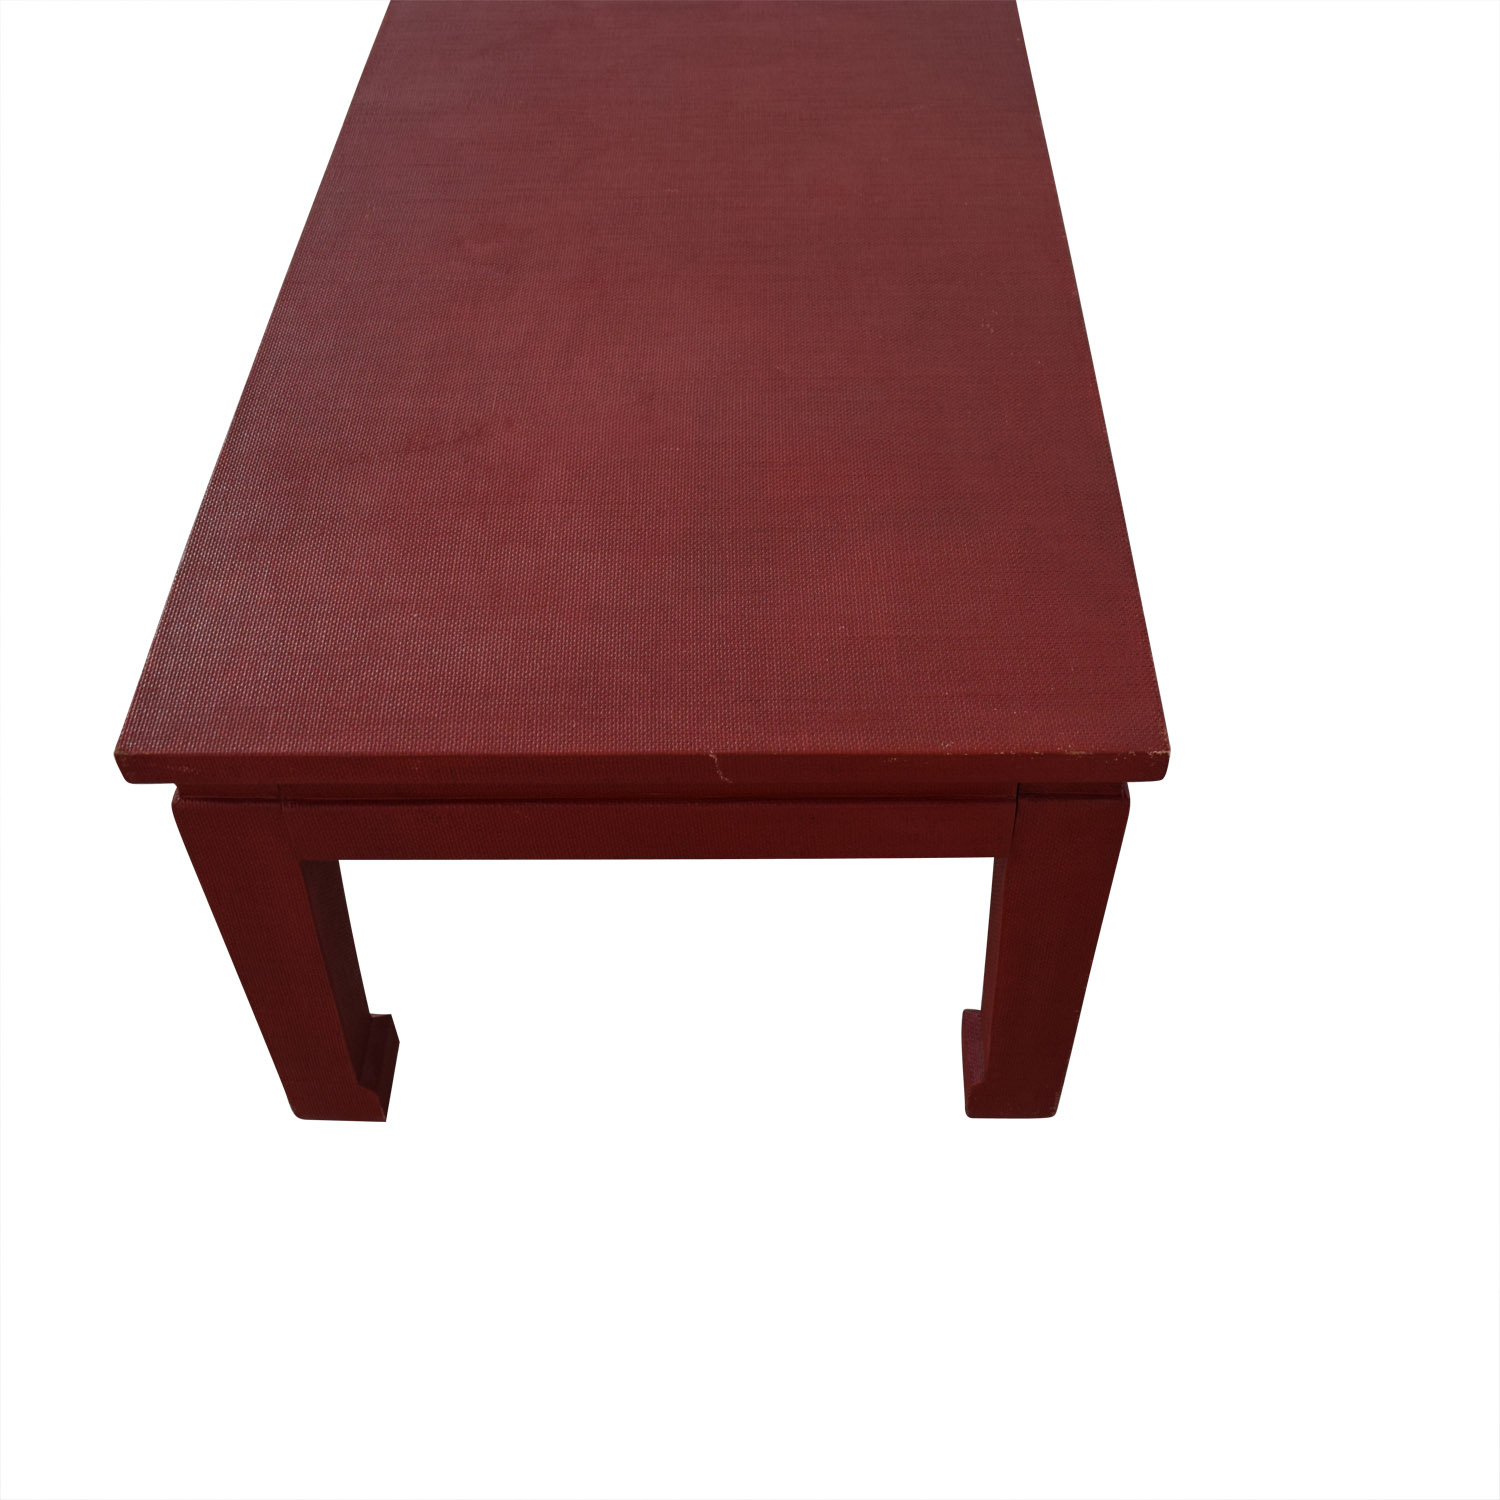 Attirant 82% OFF   One Kings Lane One Kingu0027s Lane Asian Inspired Grass Cloth Coffee  Table In Red / Tables